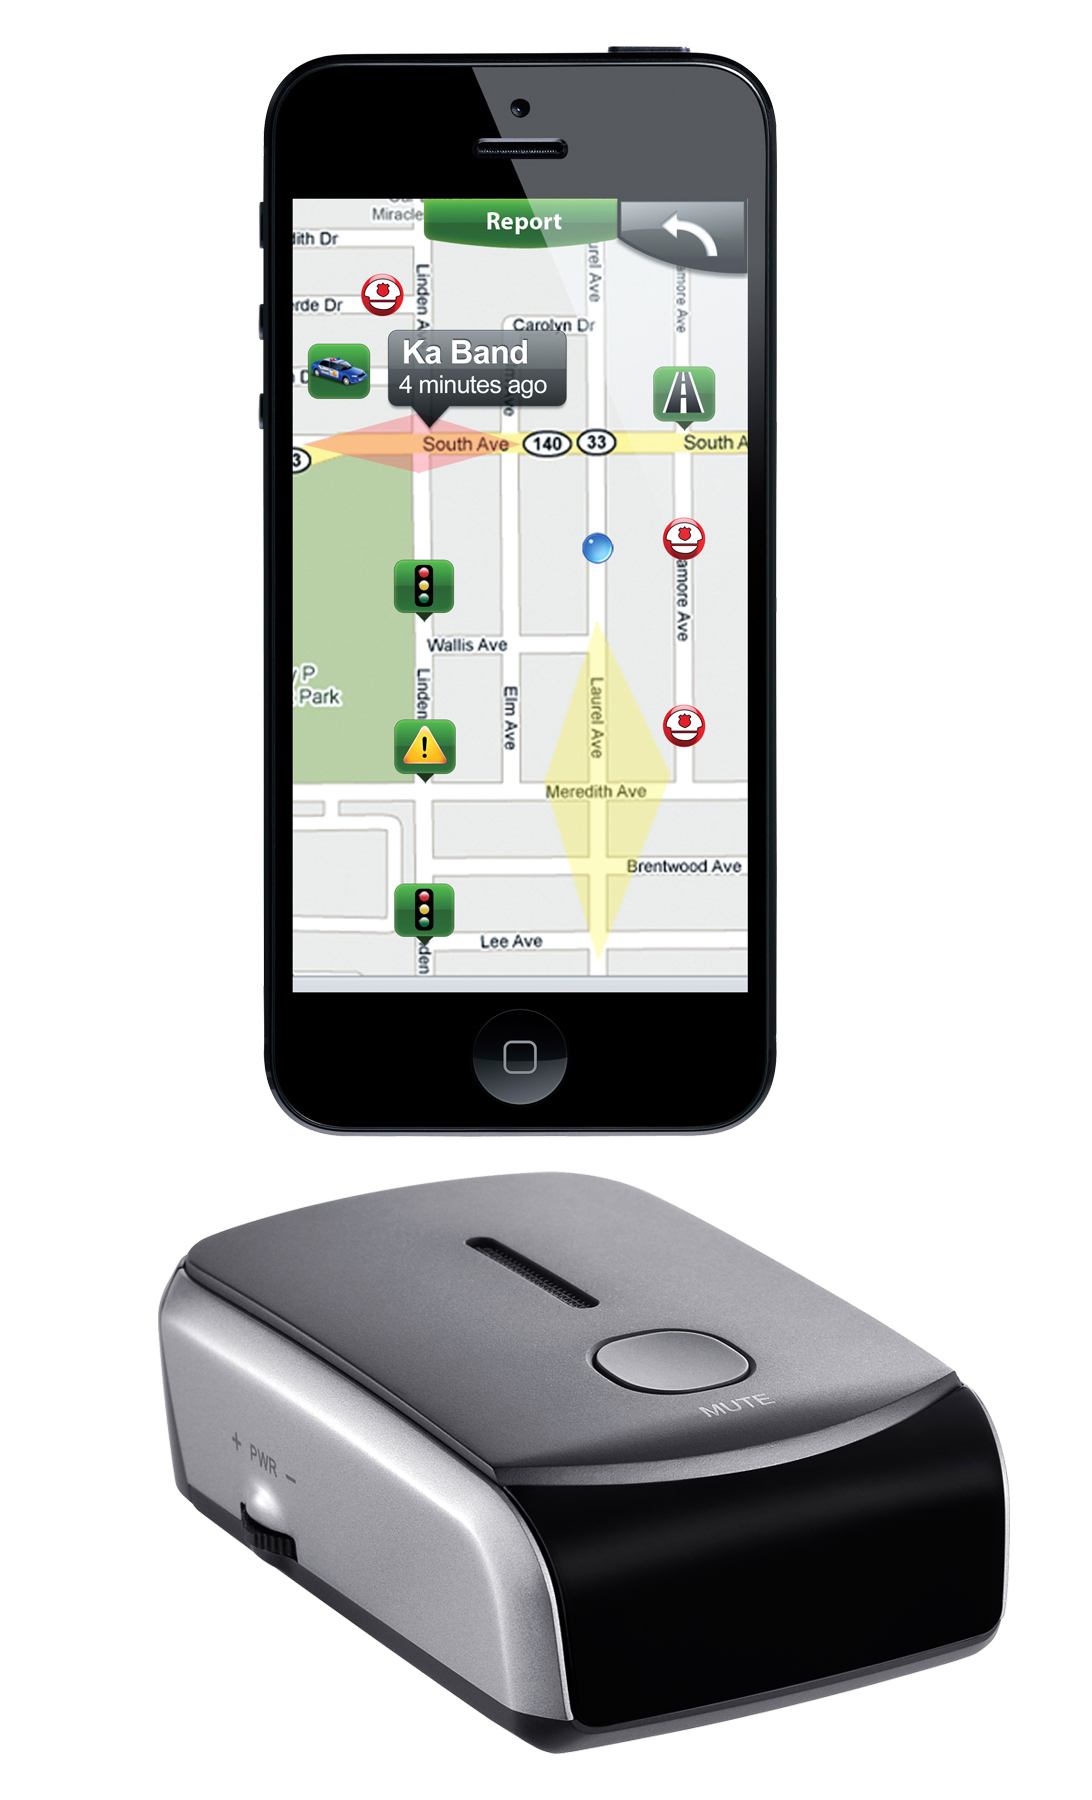 CES 2013: Cobra Previews iRadar ATOM, Smallest Radar Detector Ever